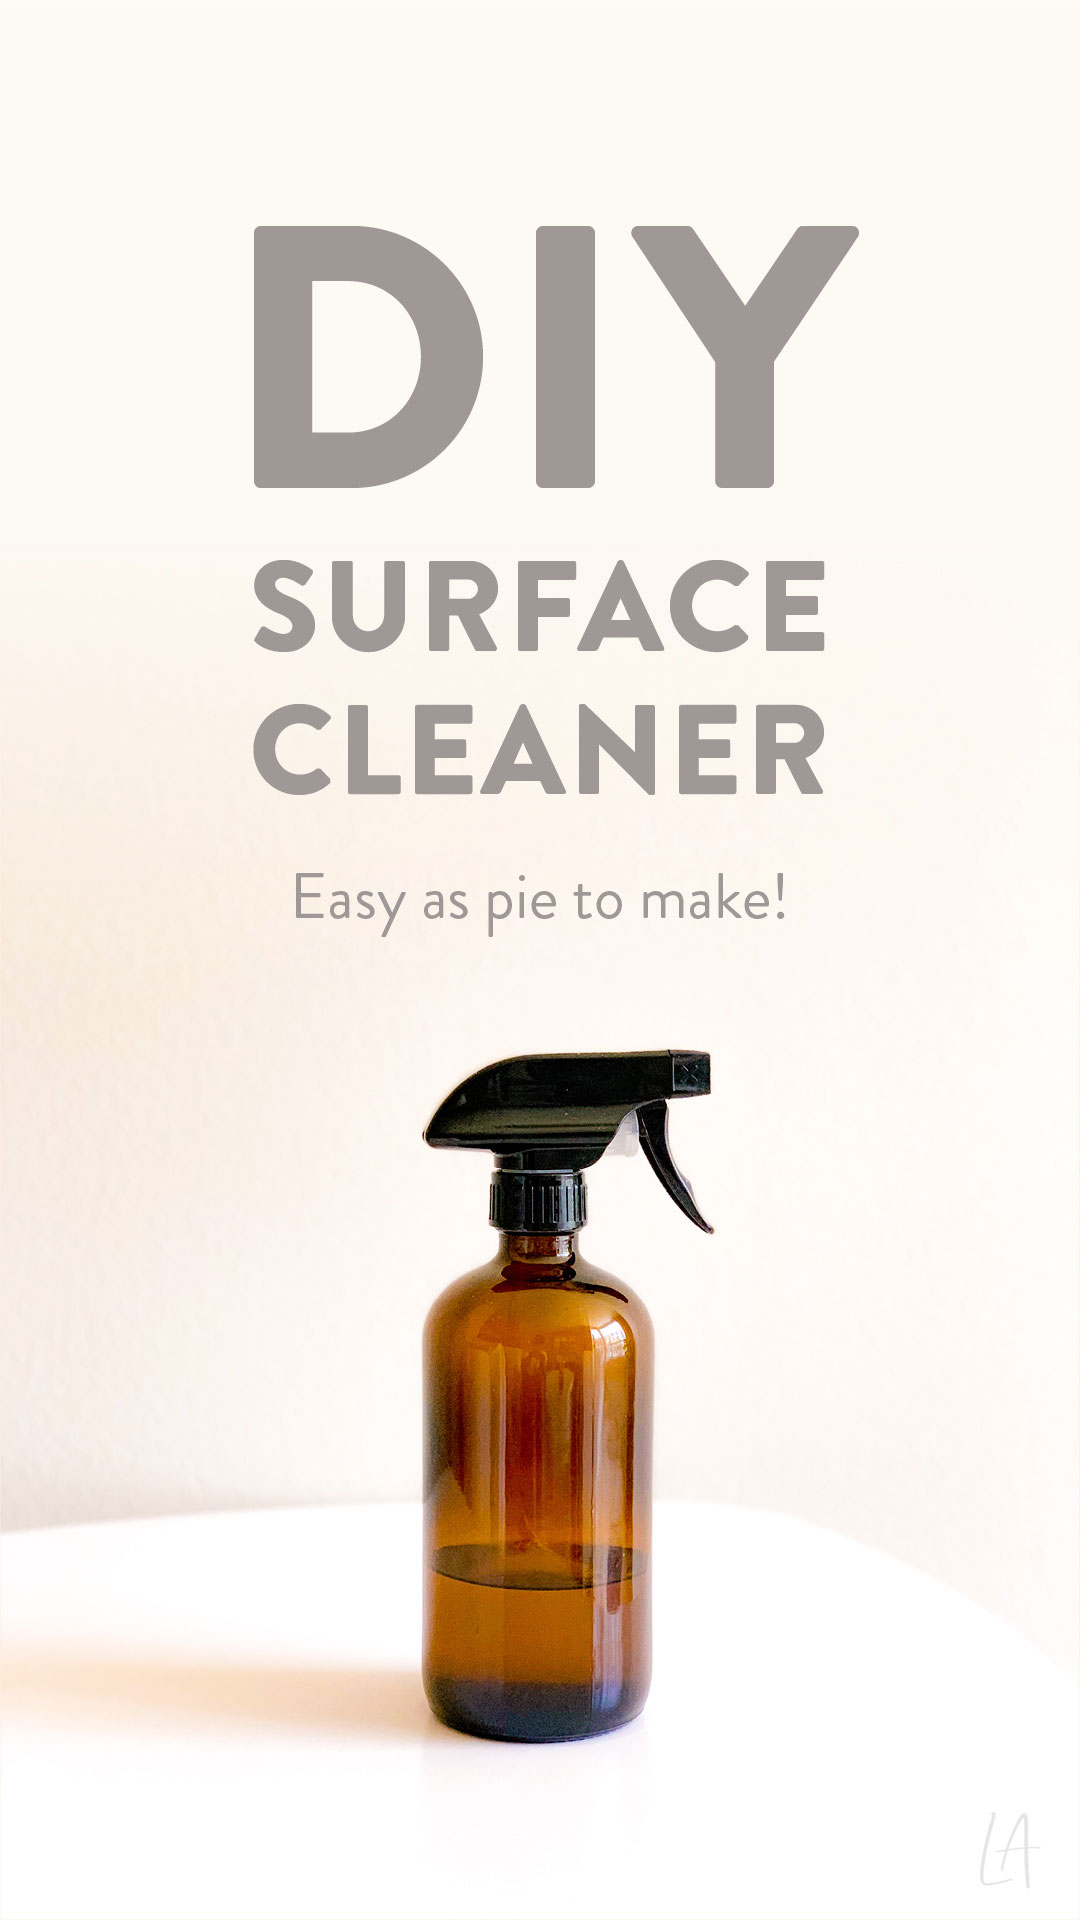 DIY Surface cleaner